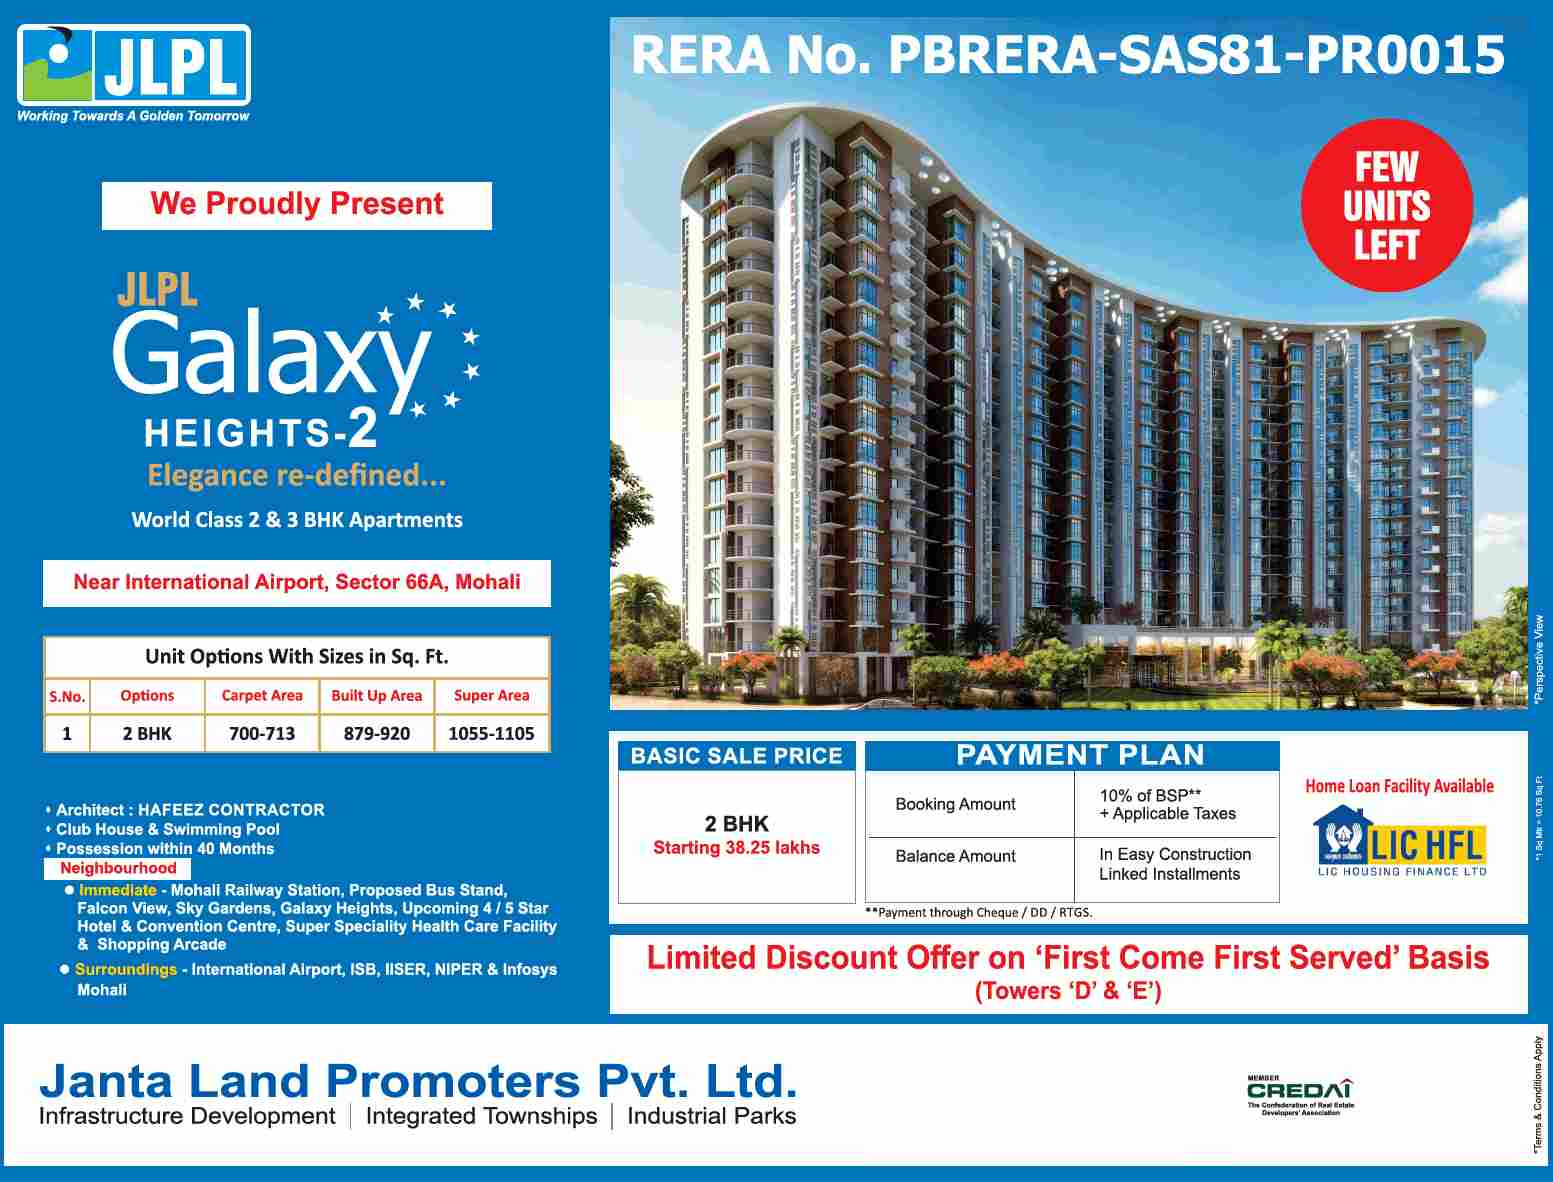 Book 2 BHK Rs 38 25 lakhs at JLPL Galaxy Heights 2 in Mohali